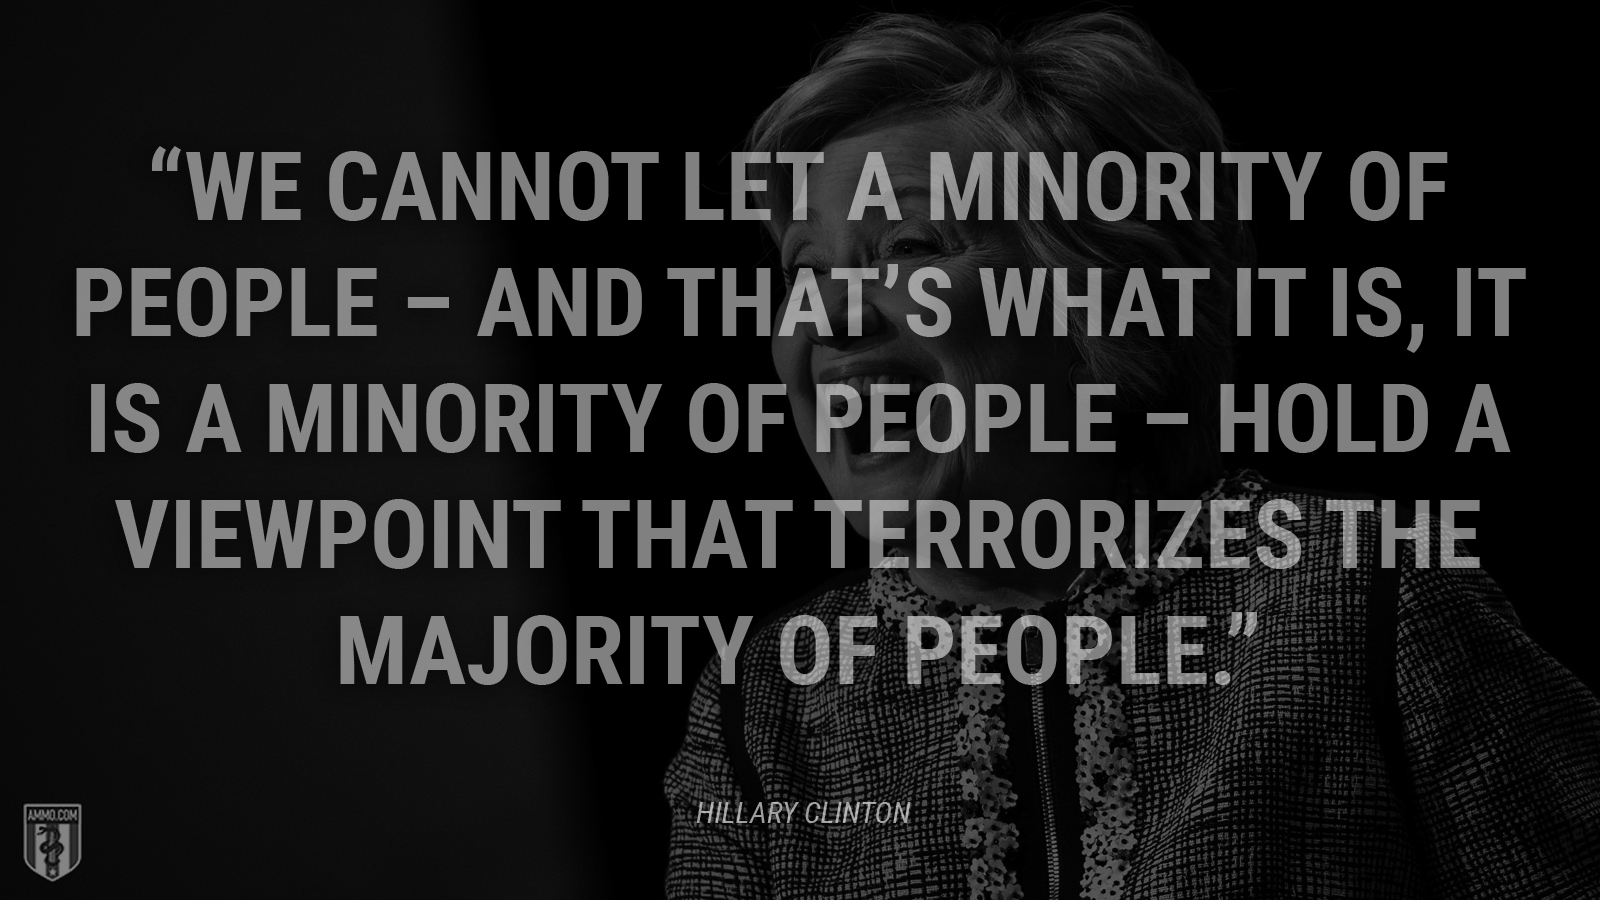 """We cannot let a minority of people—and that's what it is, it is a minority of people—hold a viewpoint that terrorizes the majority of people."" - Hillary Clinton"